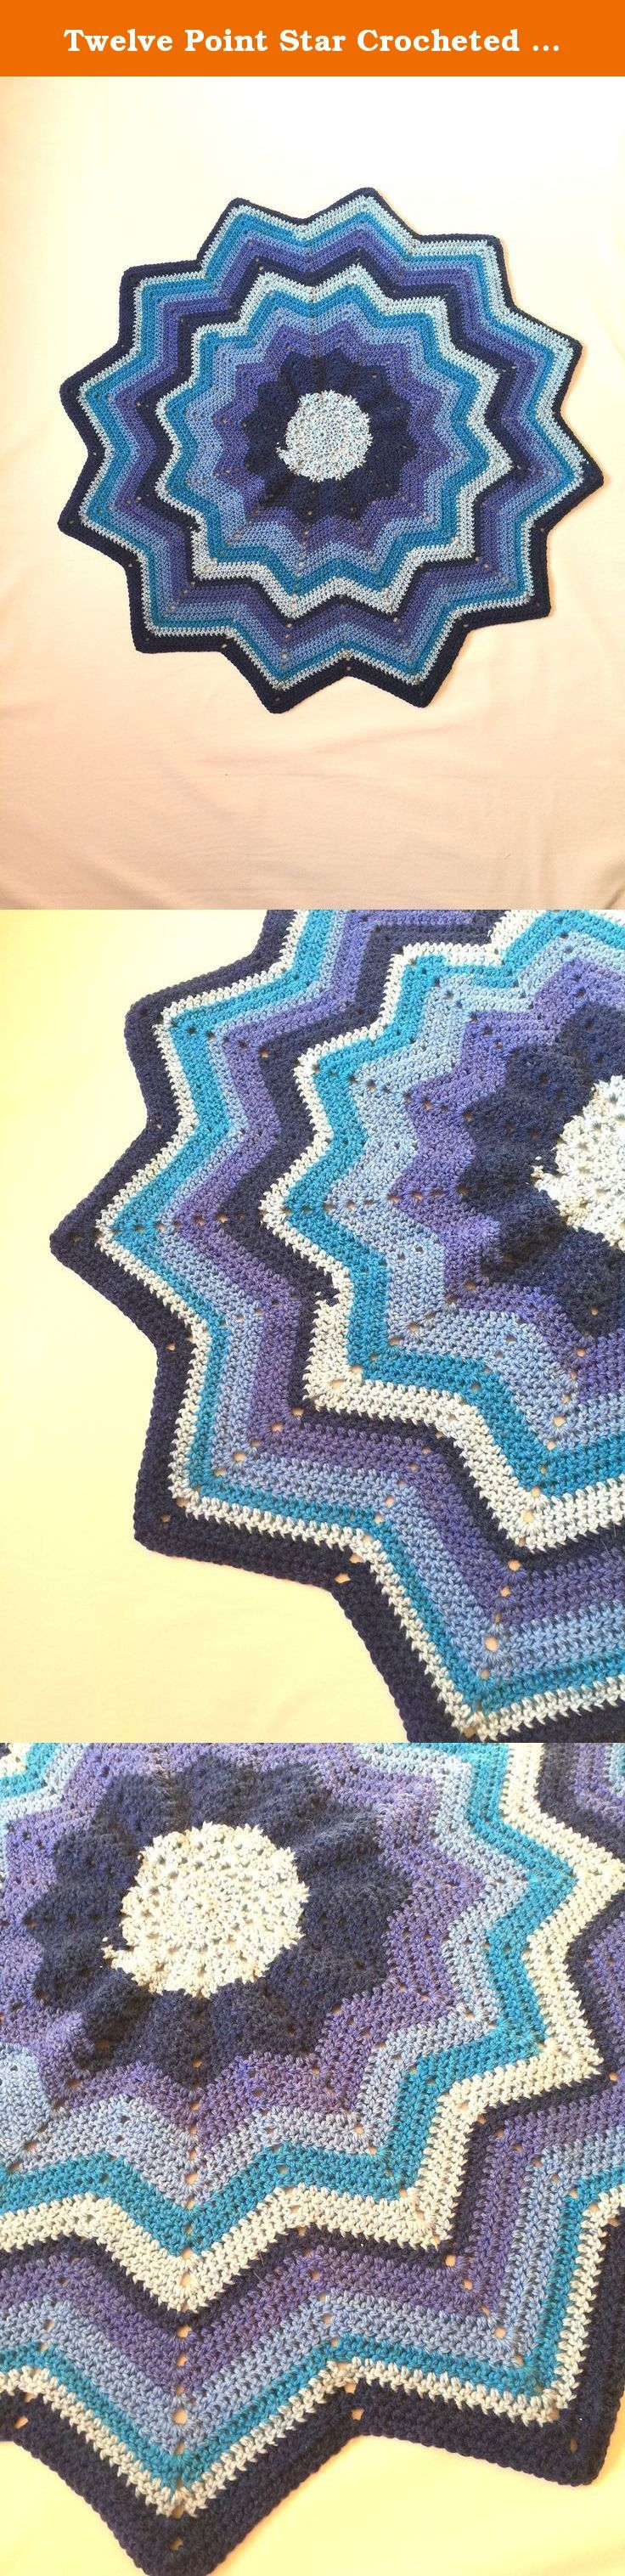 Twelve Point Star Crocheted Baby Afghan - Handmade - Ascending and Descending Blue - Perfect Gift - Stroller Blanket - Ready to Ship - Blue. This adorable twelve point star crocheted baby afghan will be perfect for any baby! This high quality yarn is extremely soft and cozy. This variegated yarn is a slowly ascending or descending blue. This blanket is perfect for laying baby down in the crib, over a stroller or even on top of a car seat in the chilly breeze. This blanket is lightweight…